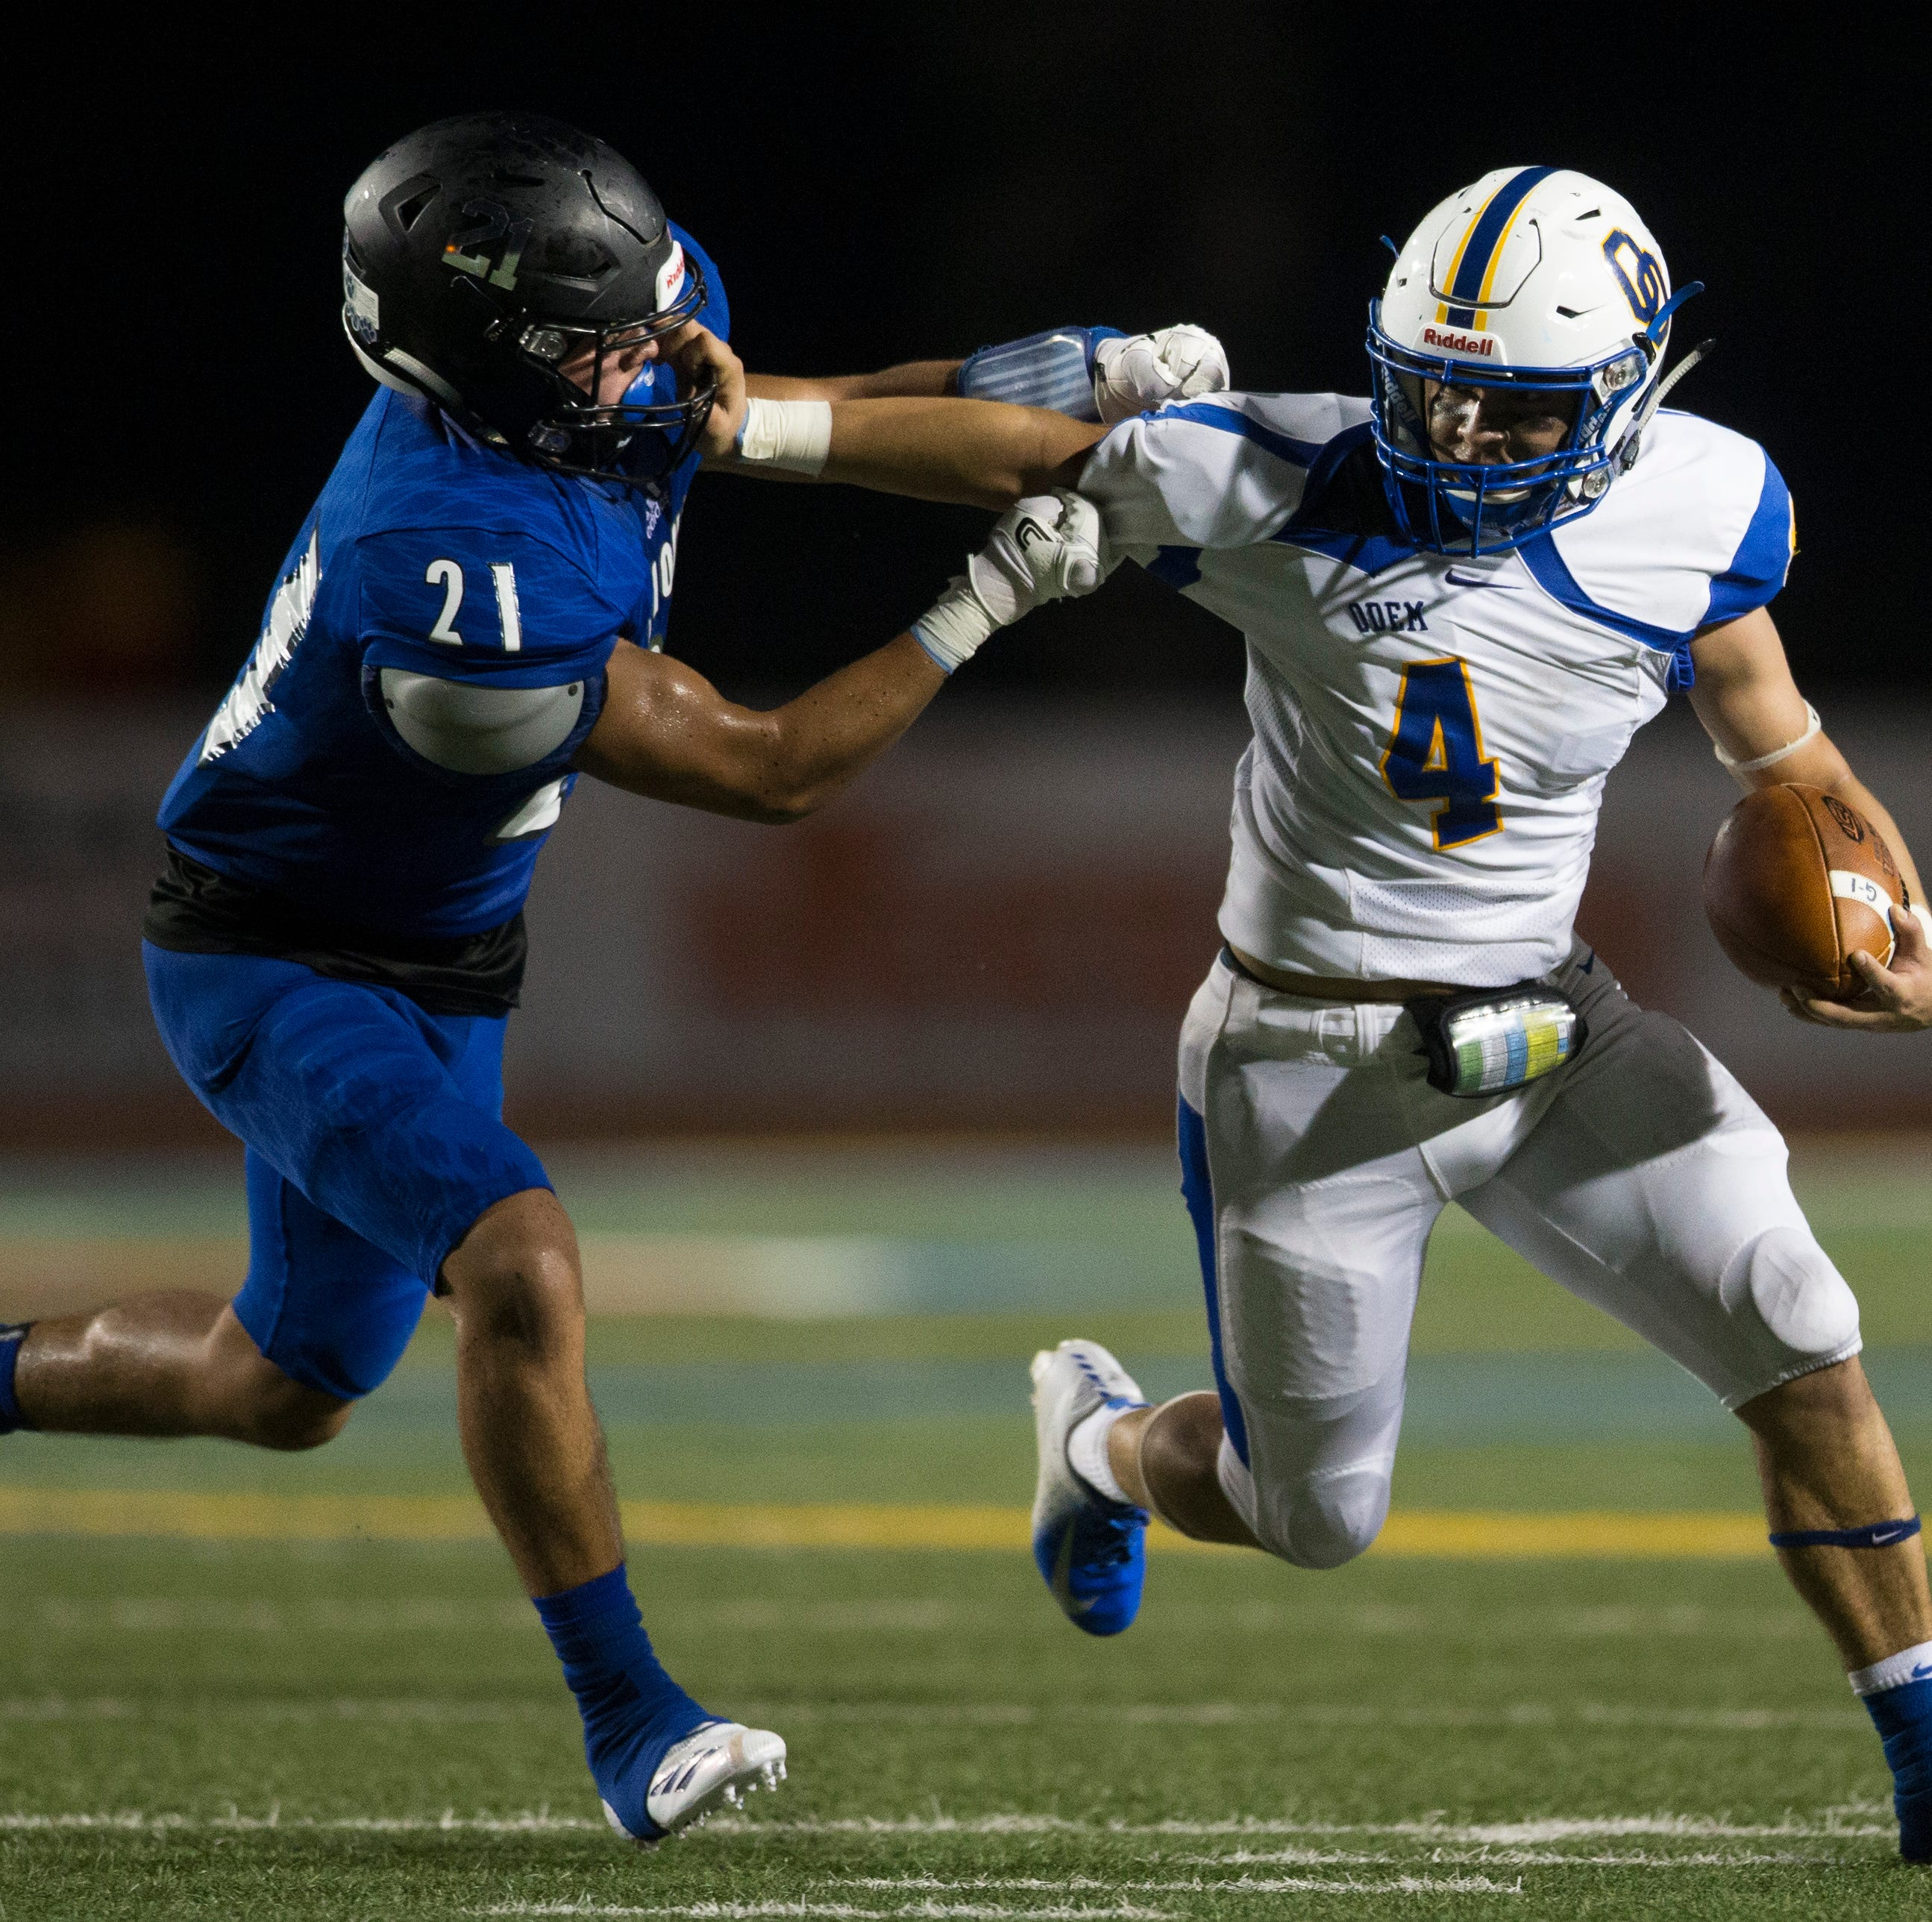 Odem Owls bull way past Santa Gertrudis Academy to finish non-district slate 4-0